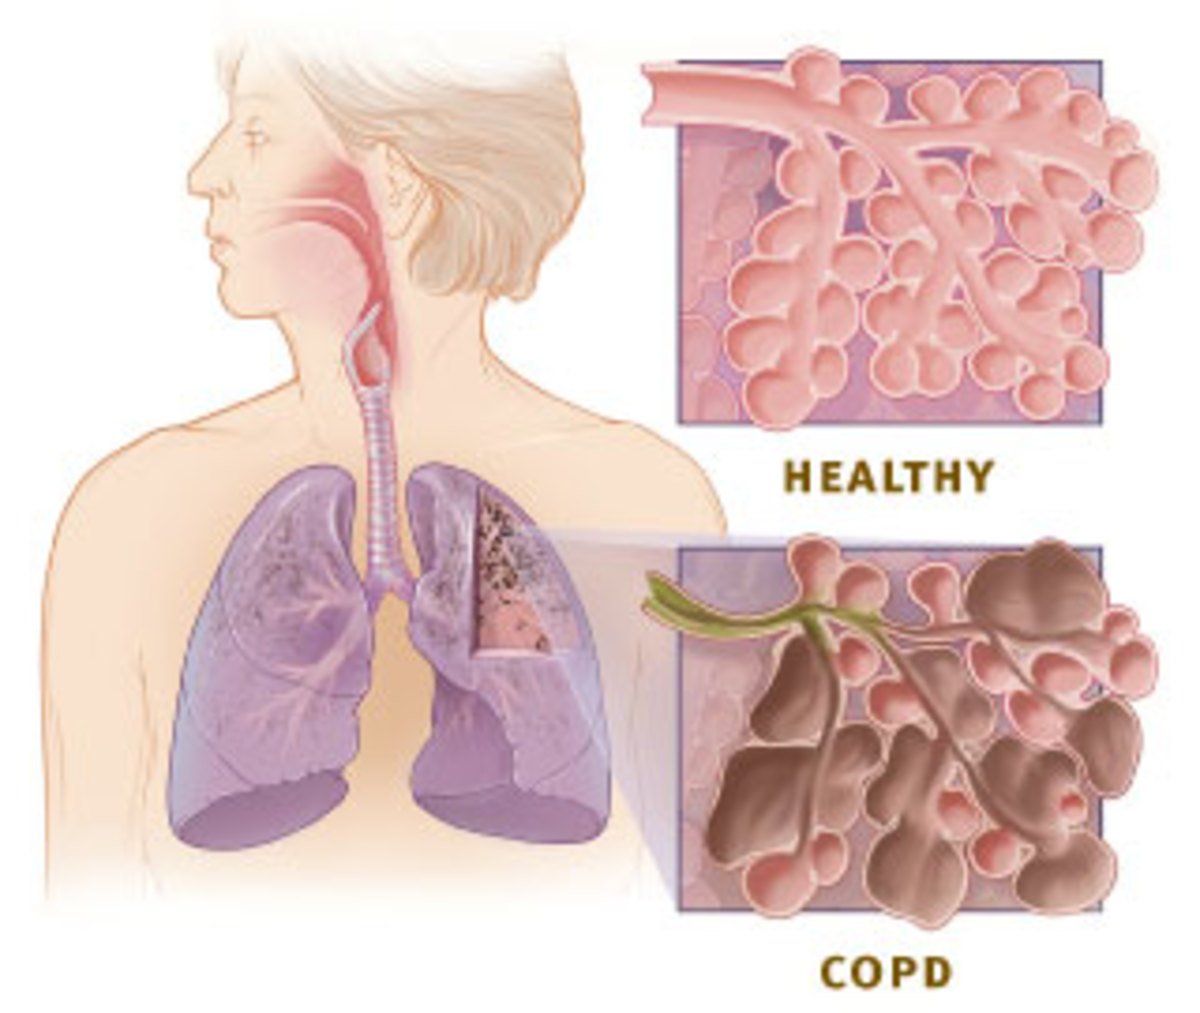 Coping with Obstructive Pulmonary Disease